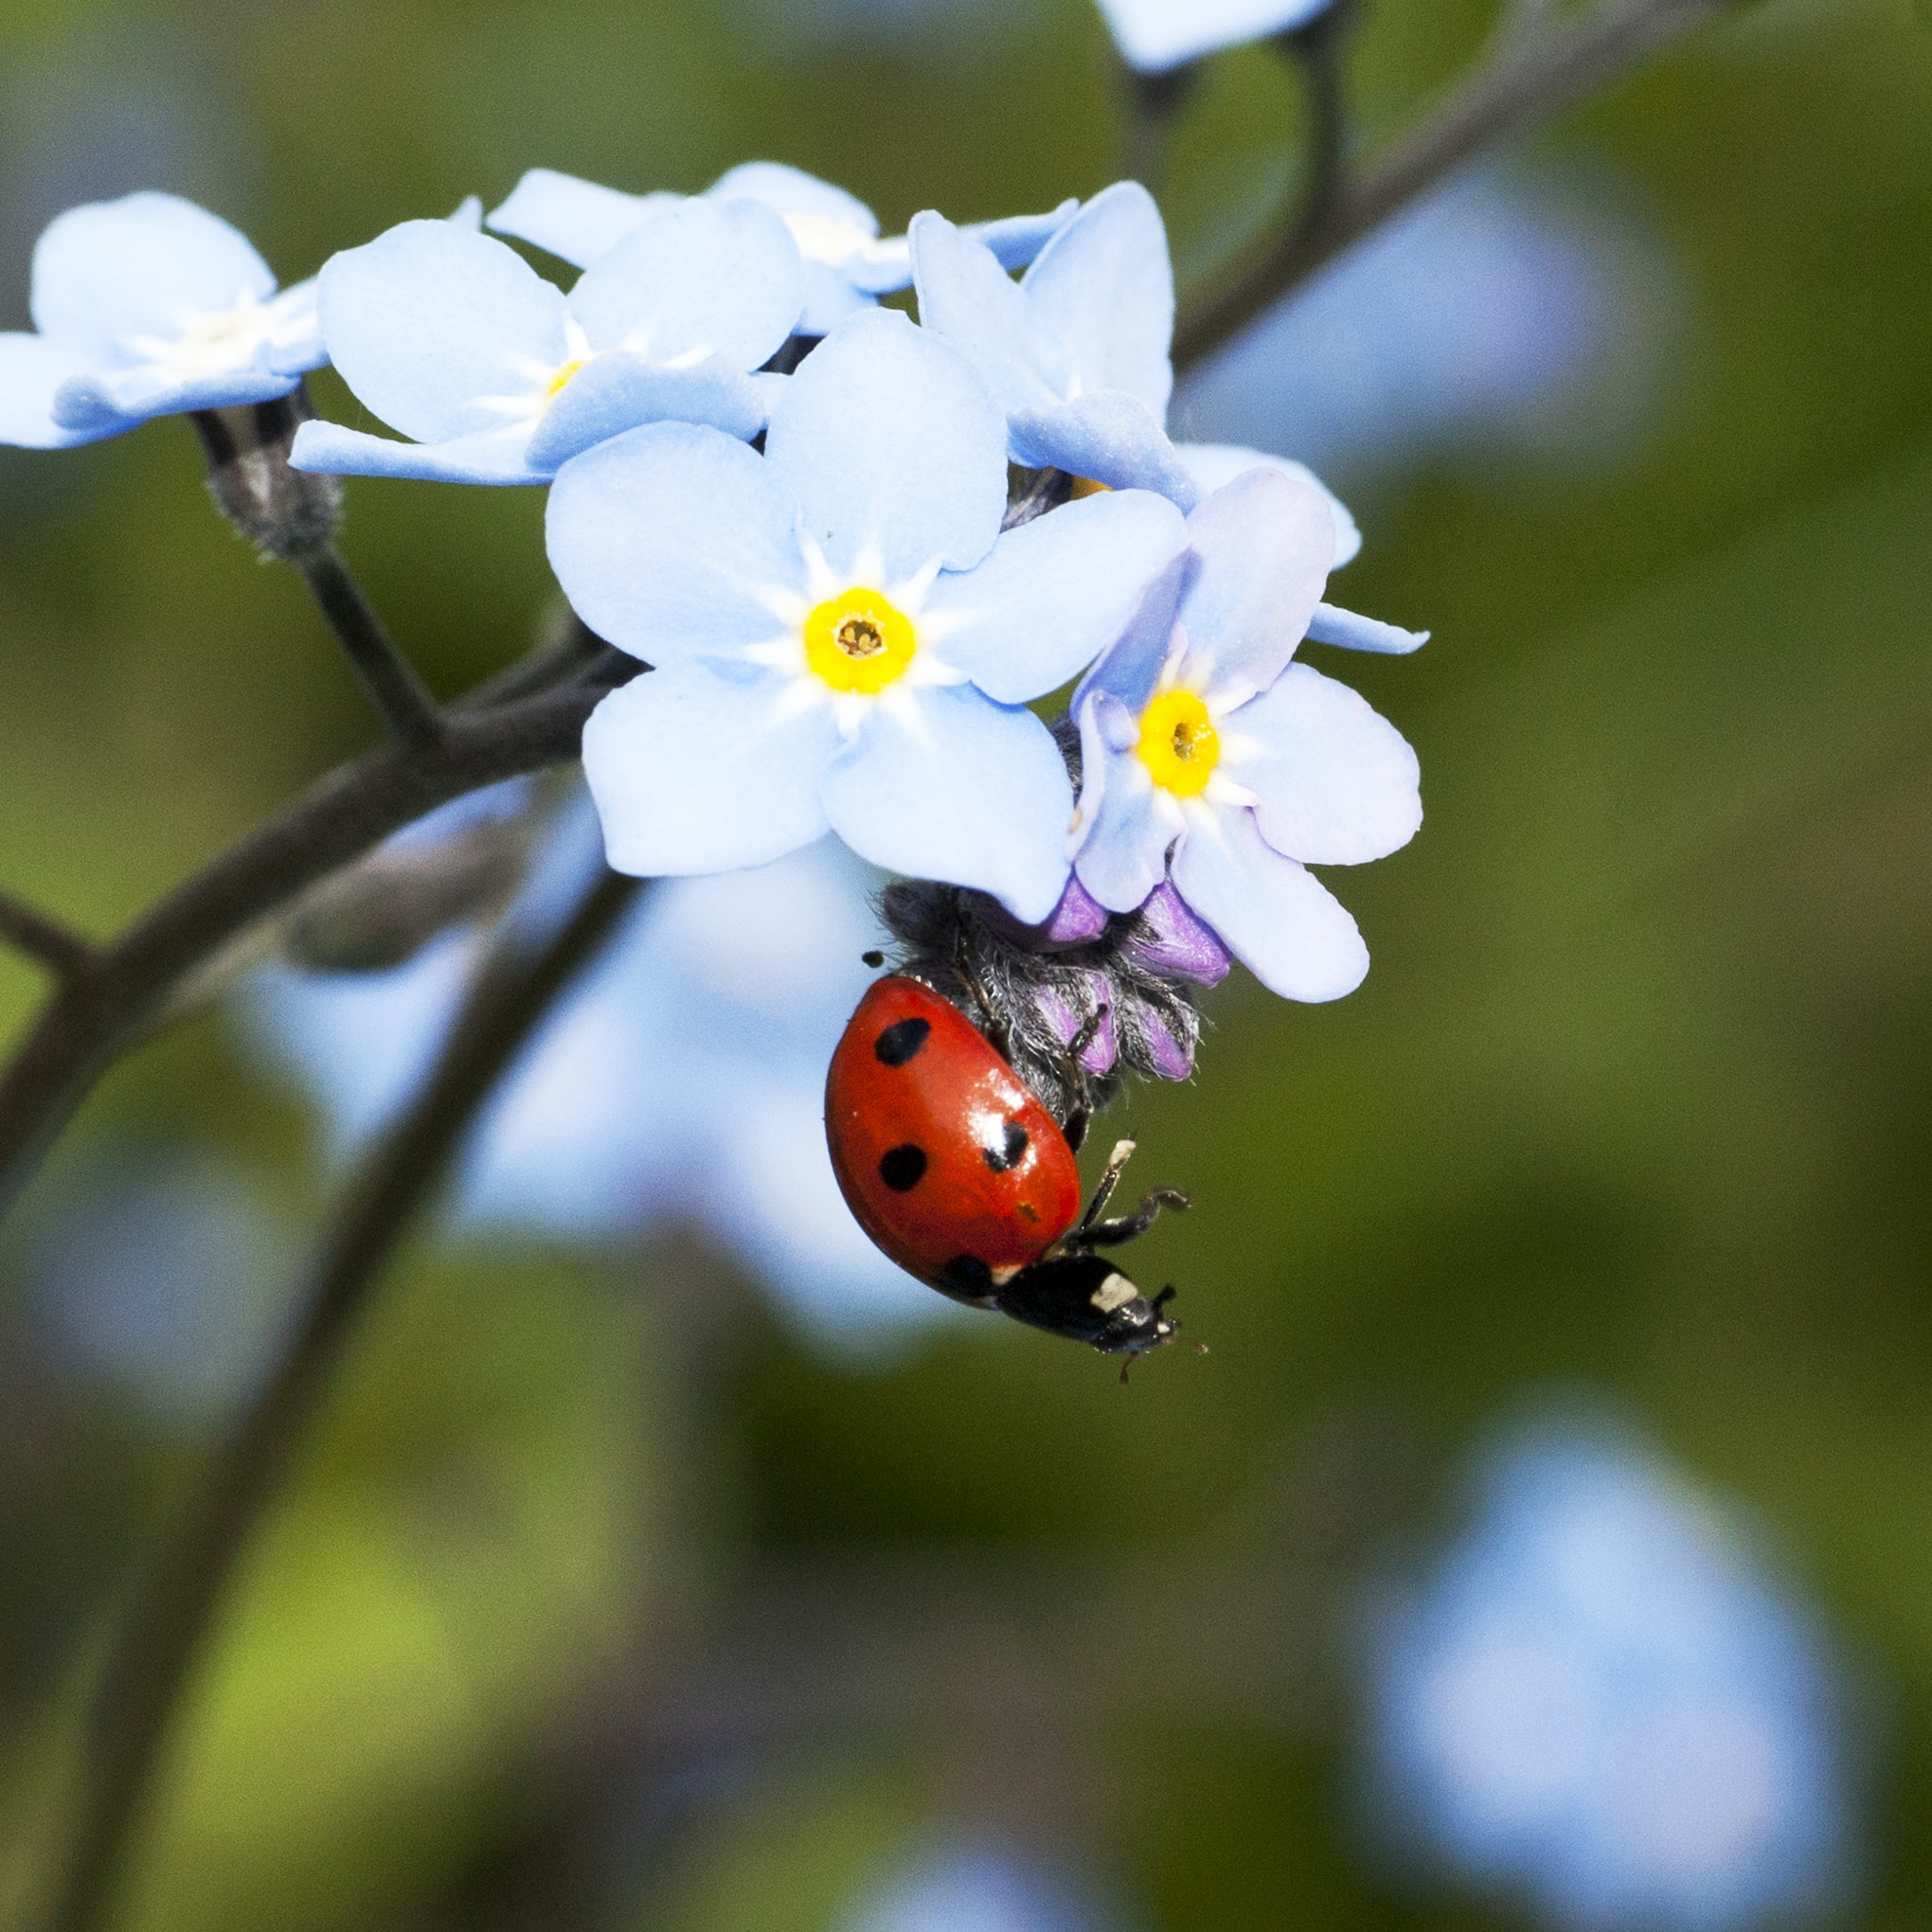 selective focus photograph of ladybug on white petaled flower plant